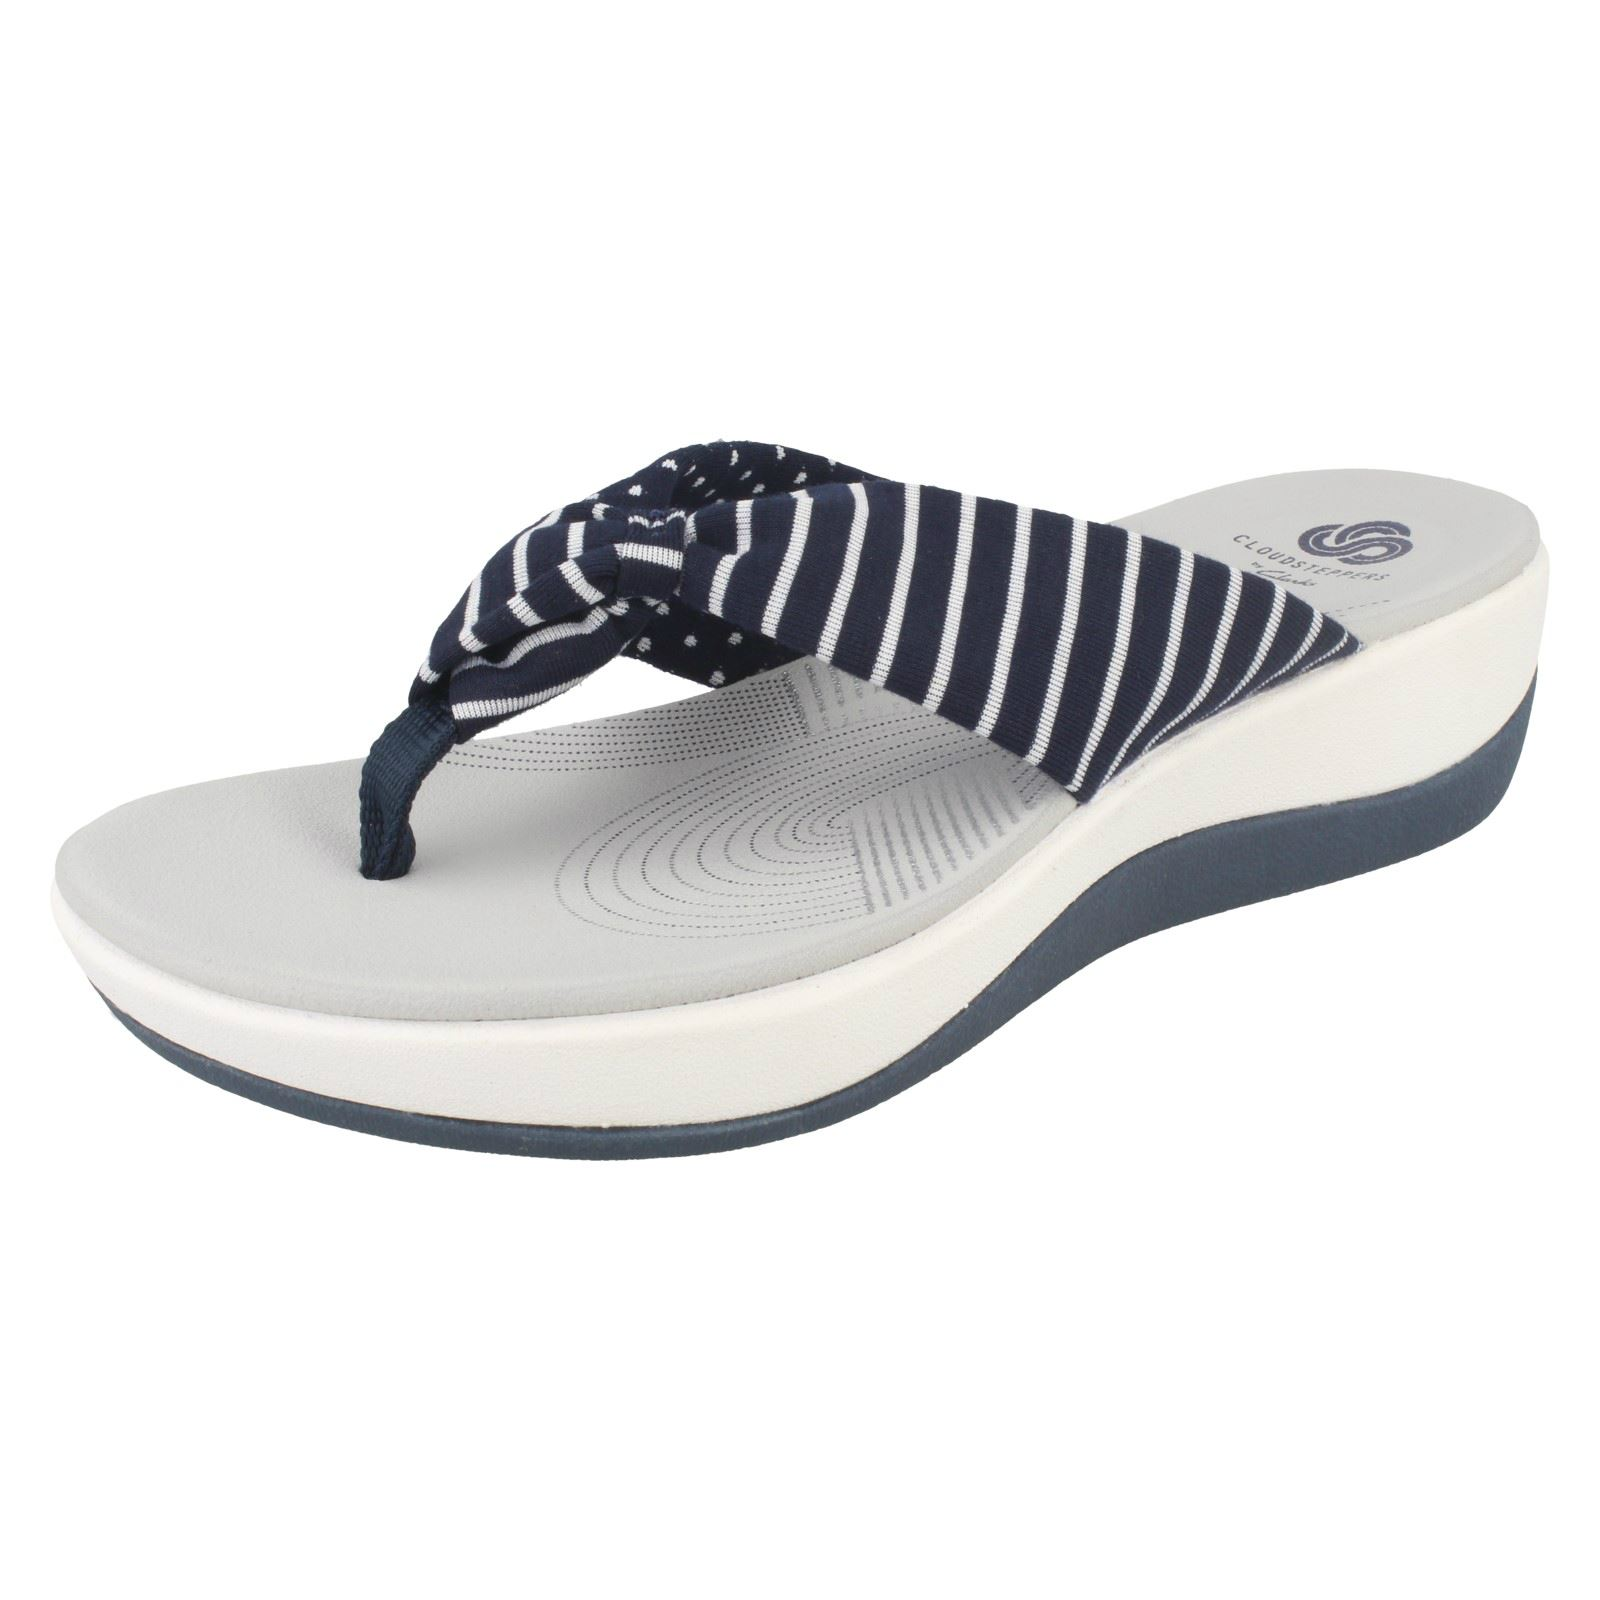 cda6f3ba7bc Details about  Ladies Clarks  Cloudsteppers Toe Post Summer Sandals Arla  Glison 18.